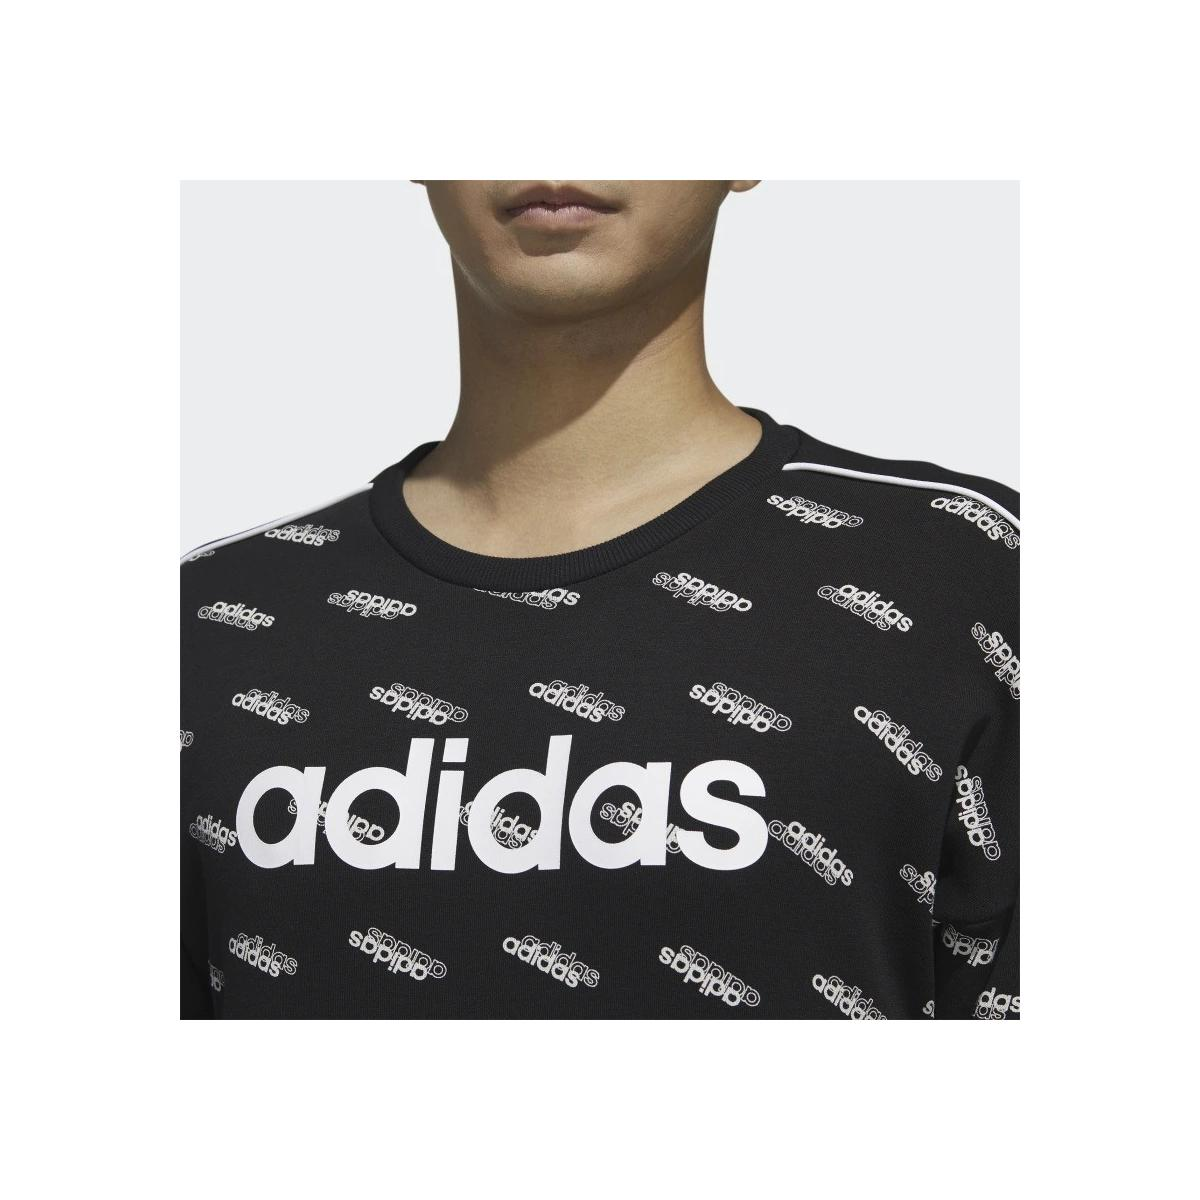 Felpa Adidas Favorites girocollo con logo all over da uomo rif. FM6077